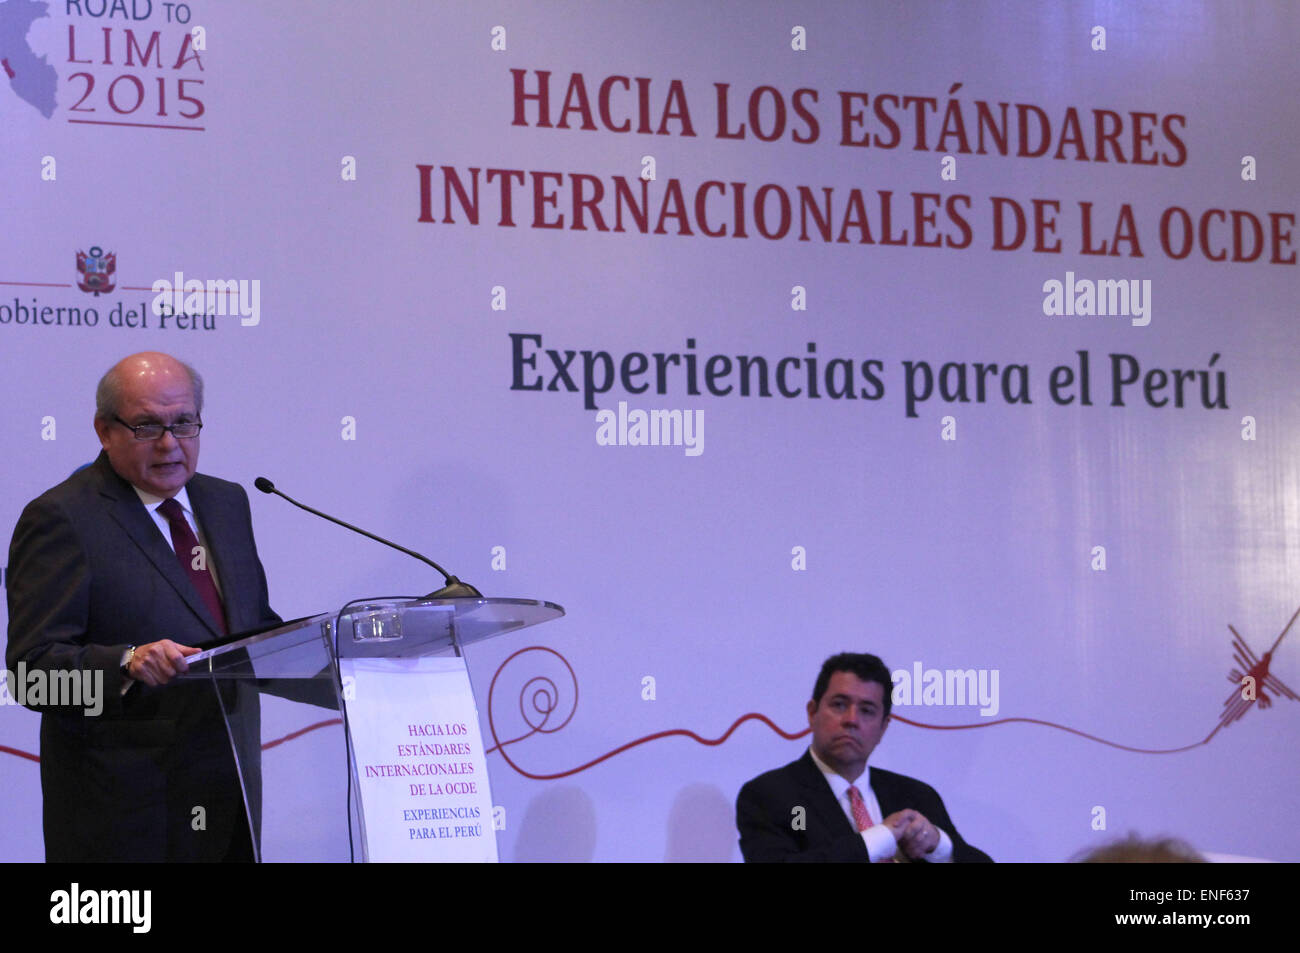 Lima, Peru. 4th May, 2015. The President of Peru's Ministries Council, Pedro Cateriano, delivers a speech during - Stock Image